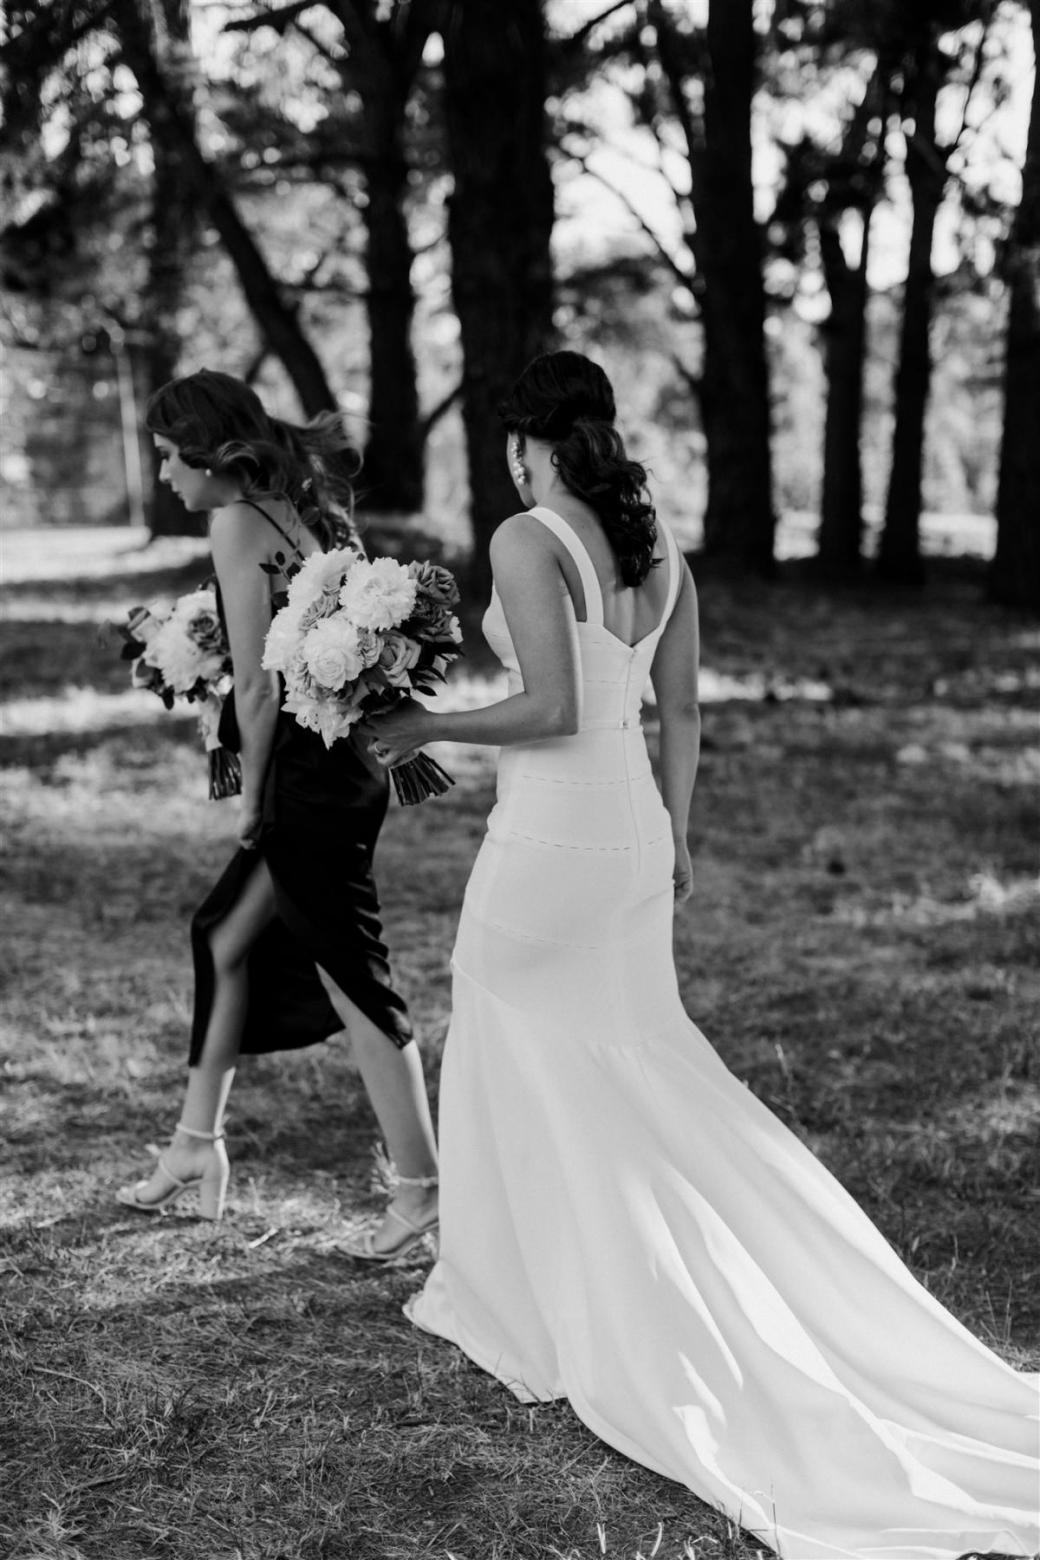 KWH real bride Rachael walking with a timeless bouquet. Rachael wears our minimalistic Violet gown.